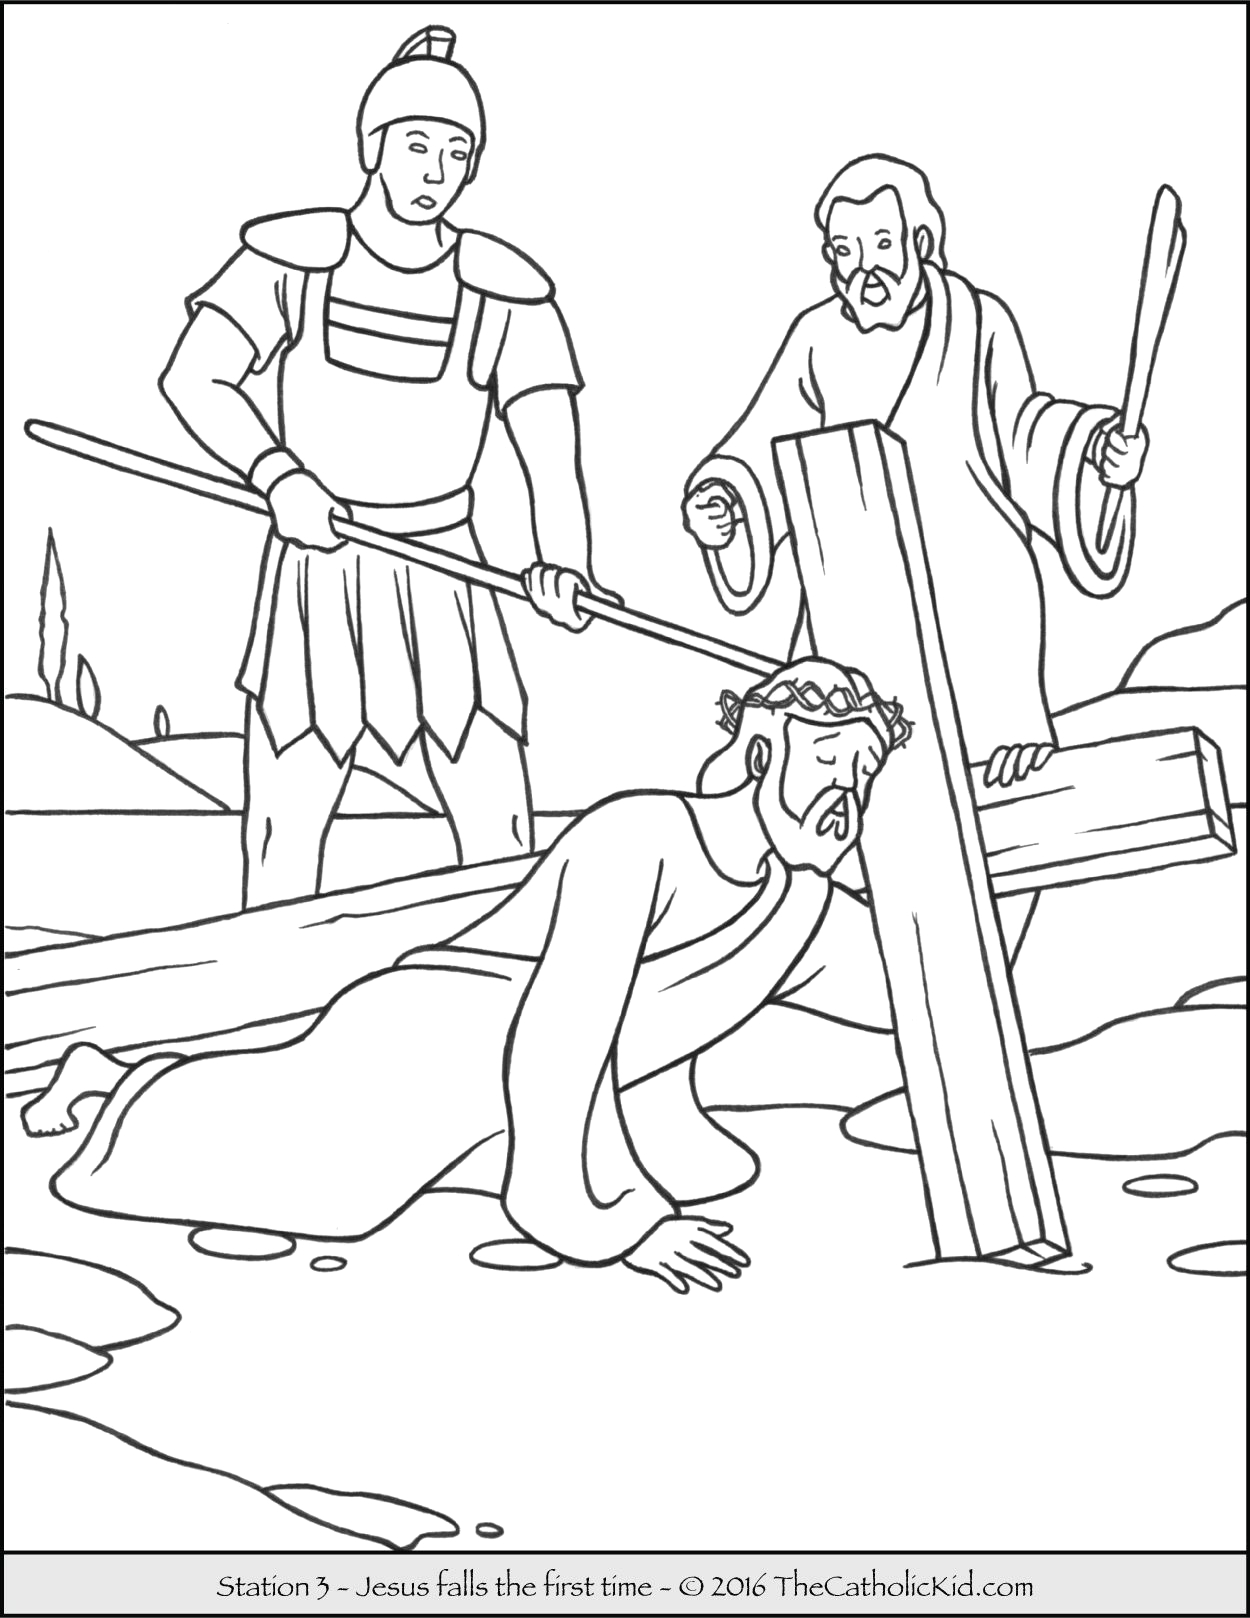 Coloring Pages Of the Stations Of the Cross Stations the Cross Coloring Page Coloring Home